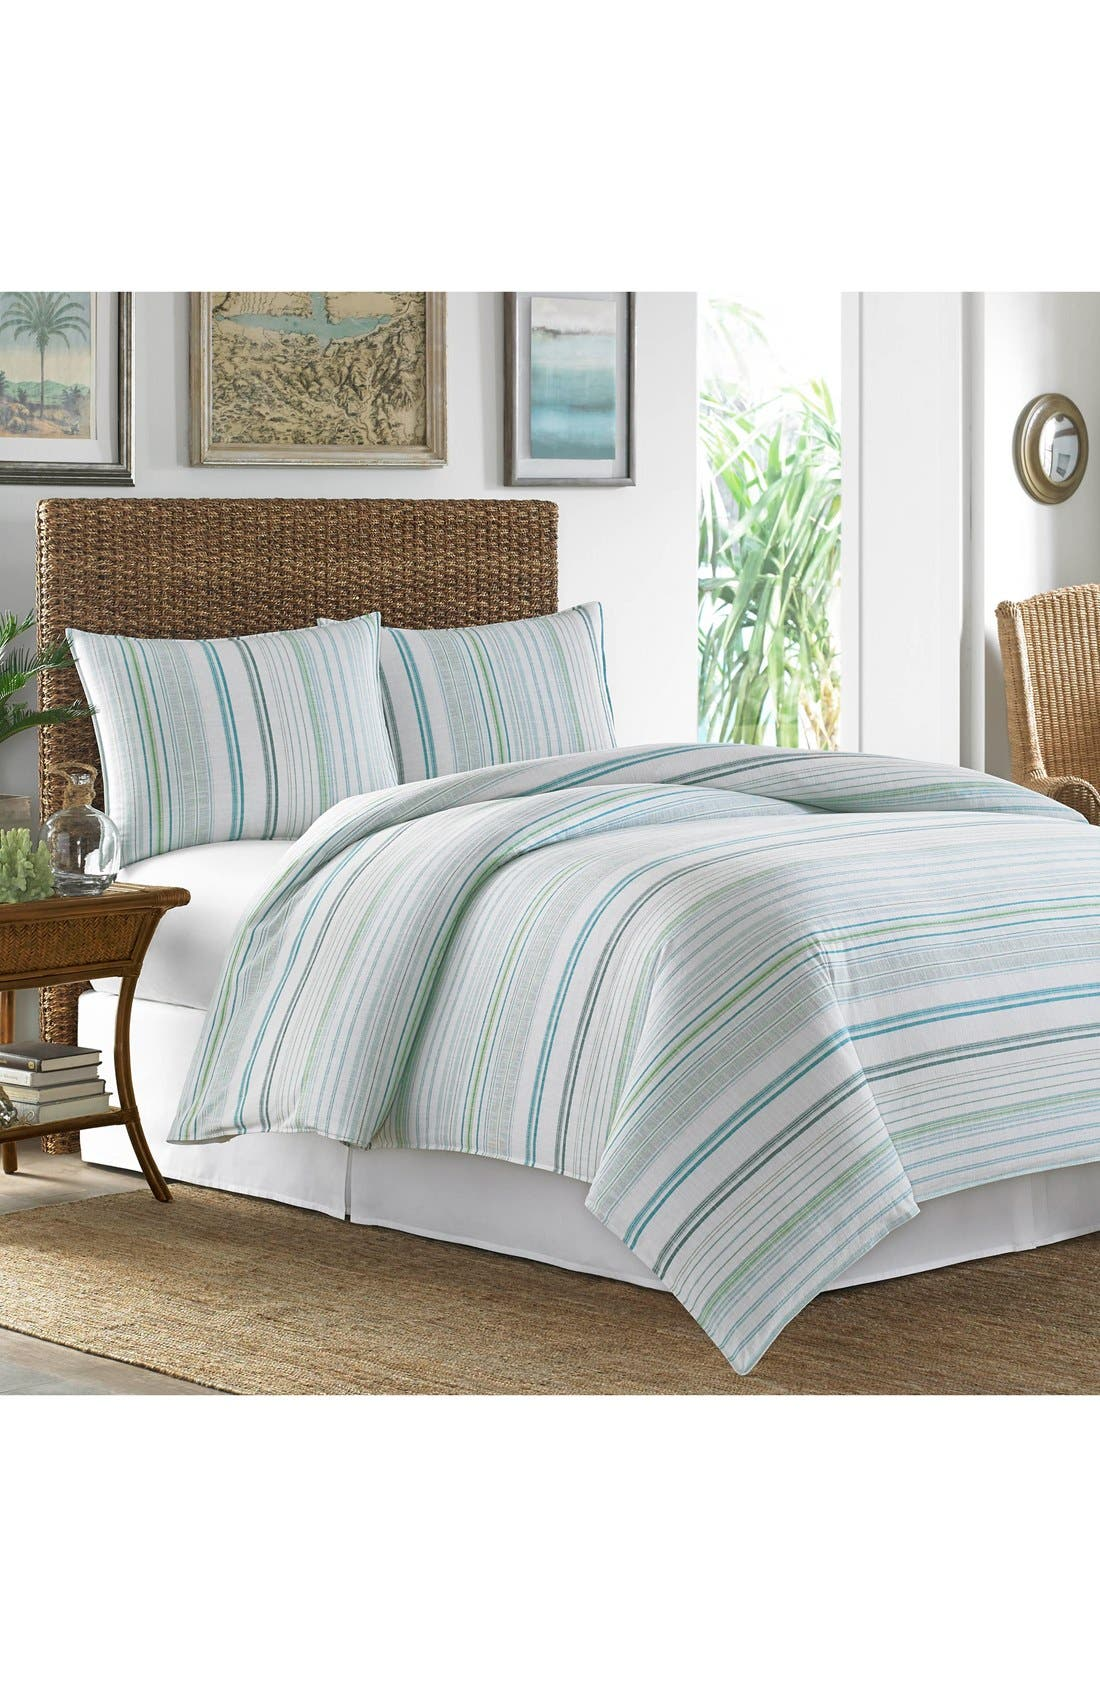 Tommy Bahama 'La Scala Breezer' Duvet Cover